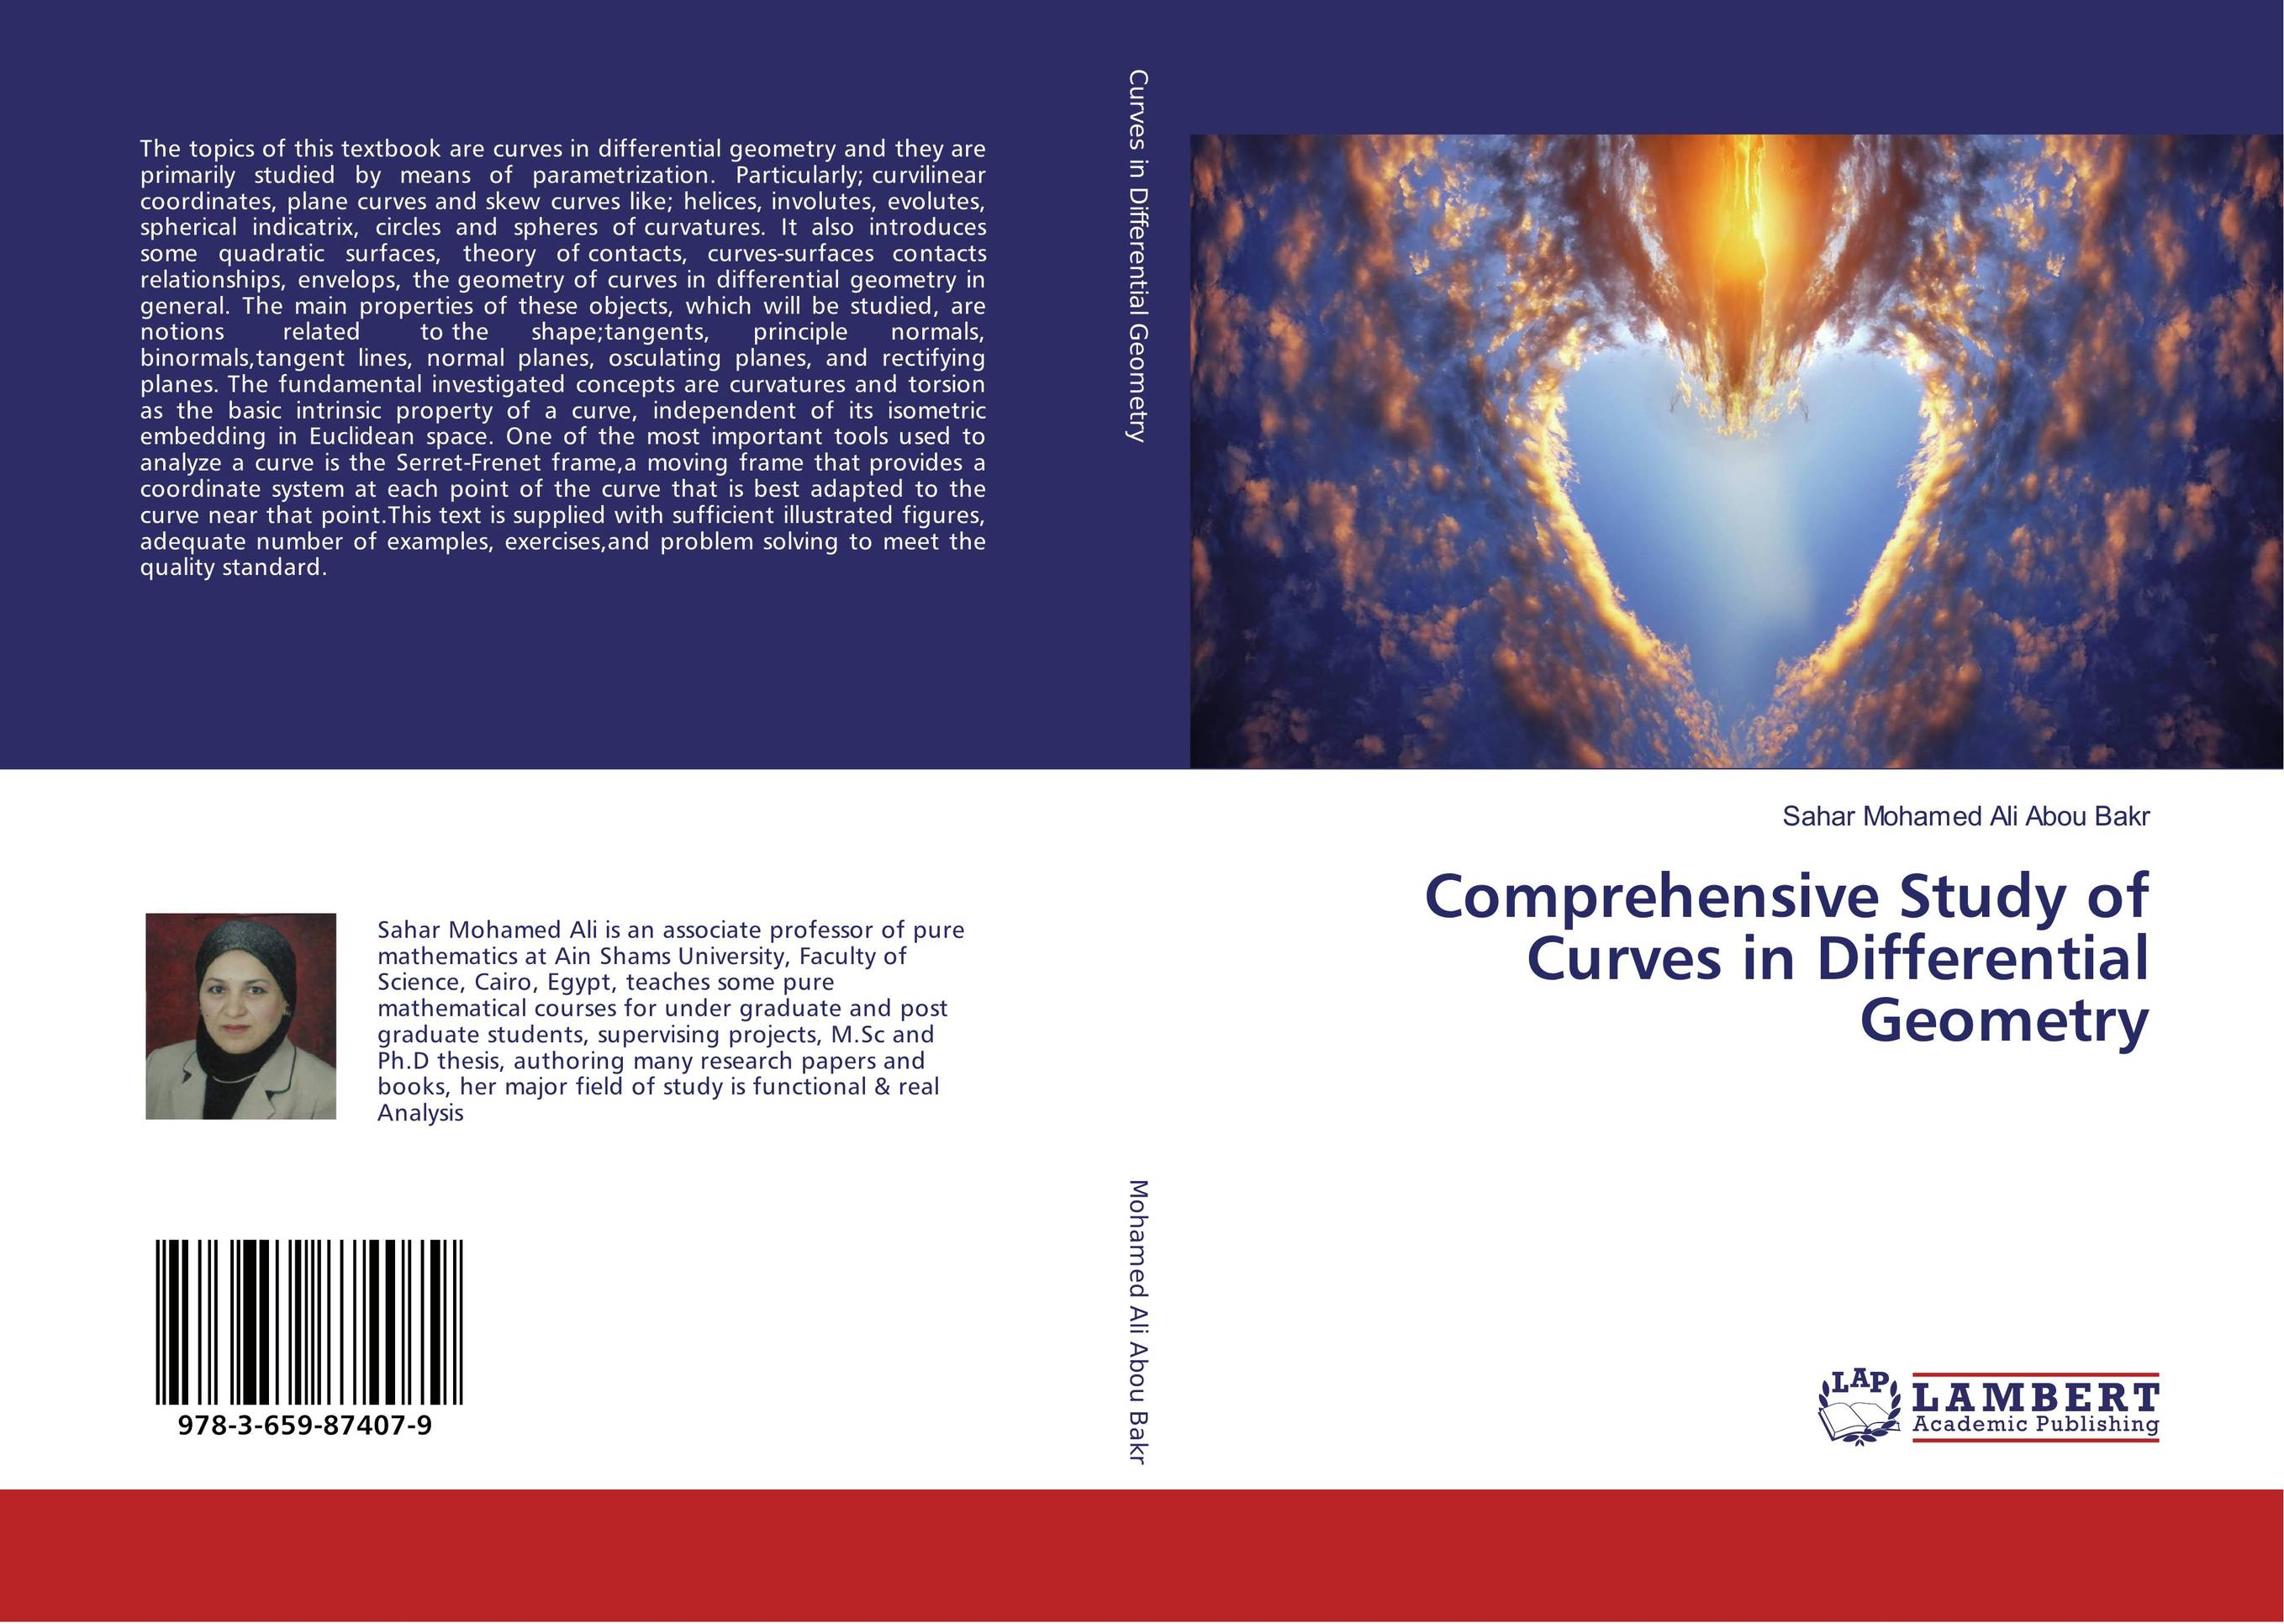 Comprehensive Study of Curves in Differential Geometry cltgxdd us 050 usb jack for lenovo g550 g550a g550g g550m g550 for acer aspire 5743z emachines e520 e525 e725